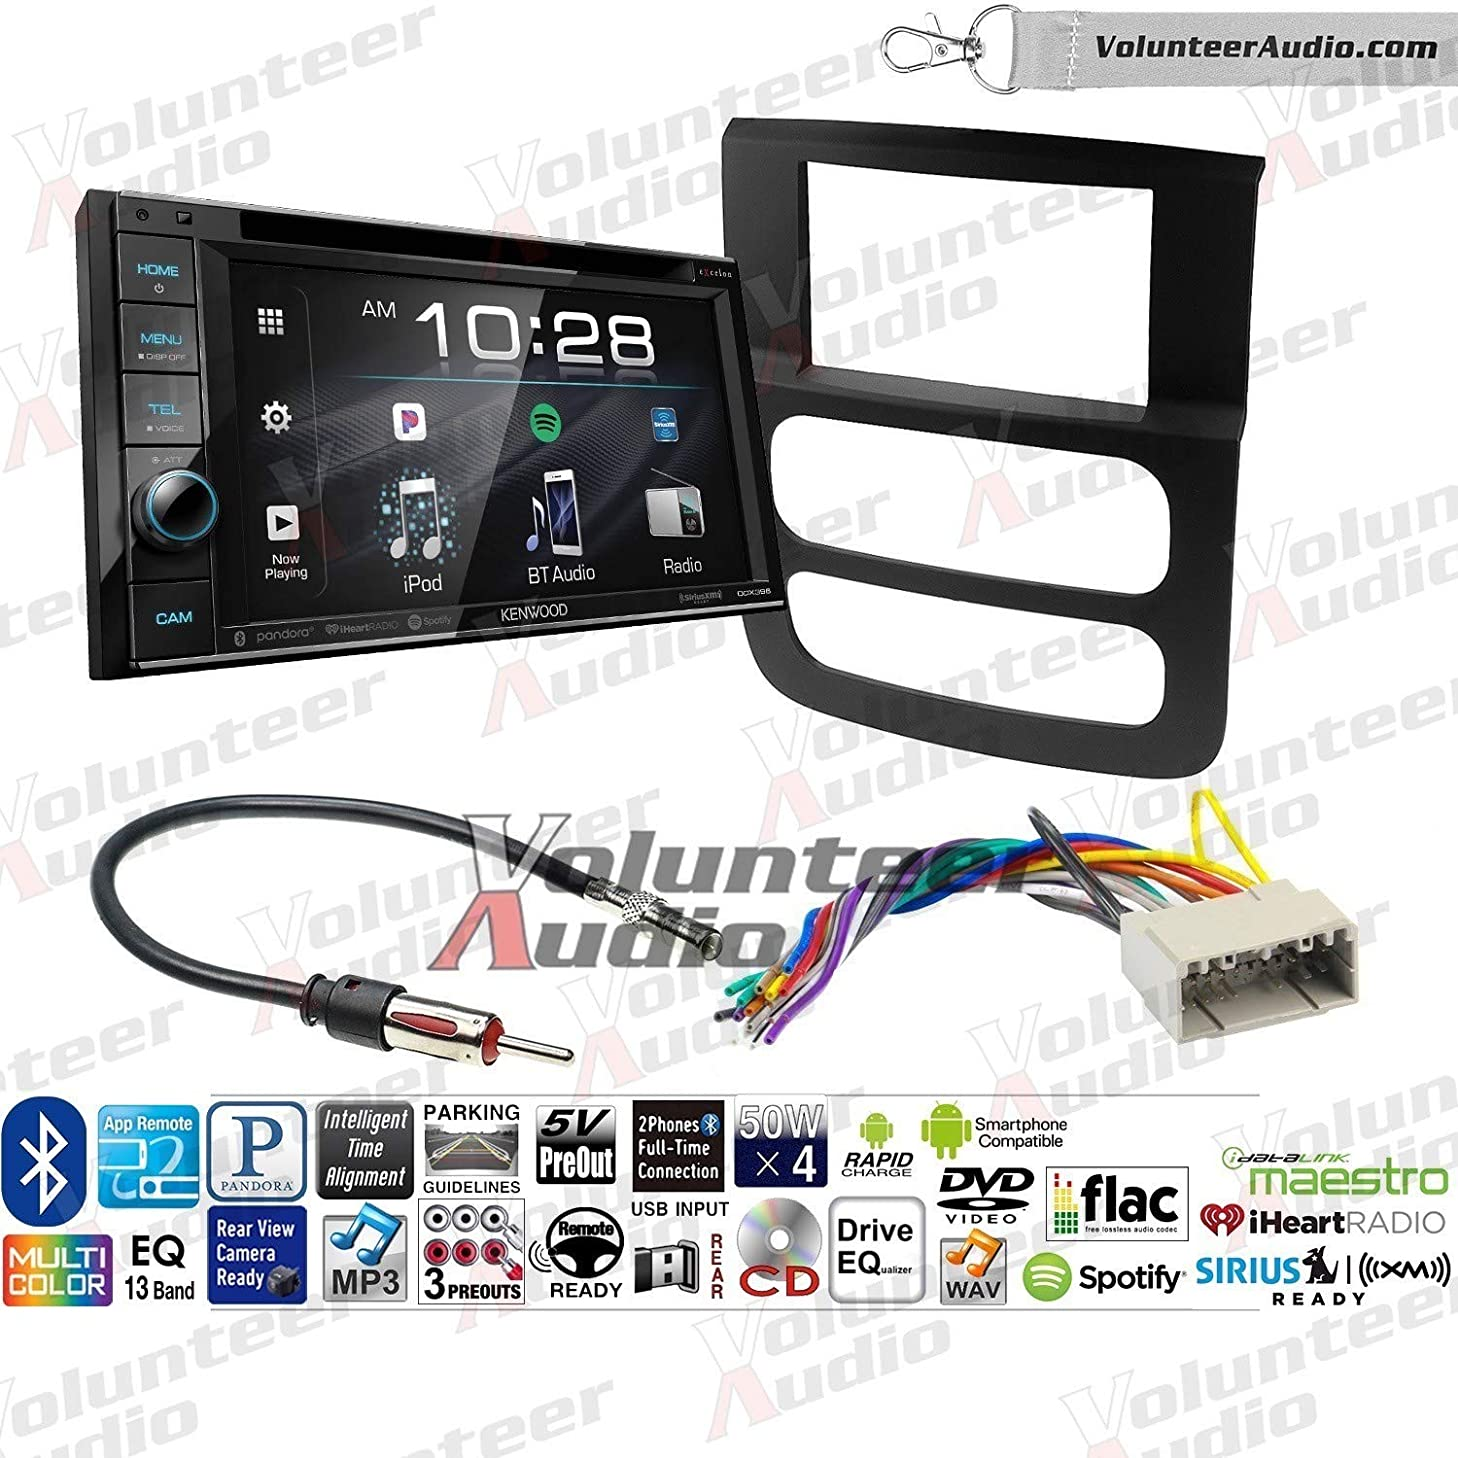 Kenwood Excelon DDX396 Double Din Radio Install Kit With Sirius XM Ready, CD Player, USB/AUX Fits 2002-2005 Ram